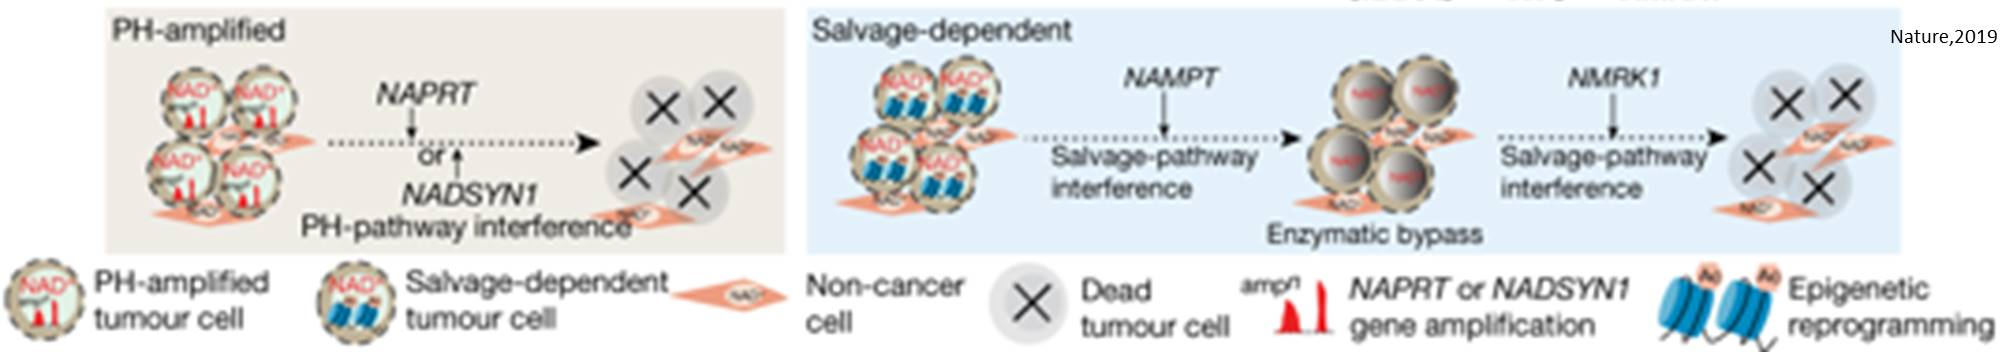 Tumor metabolic dependency may dictate cancer therapies